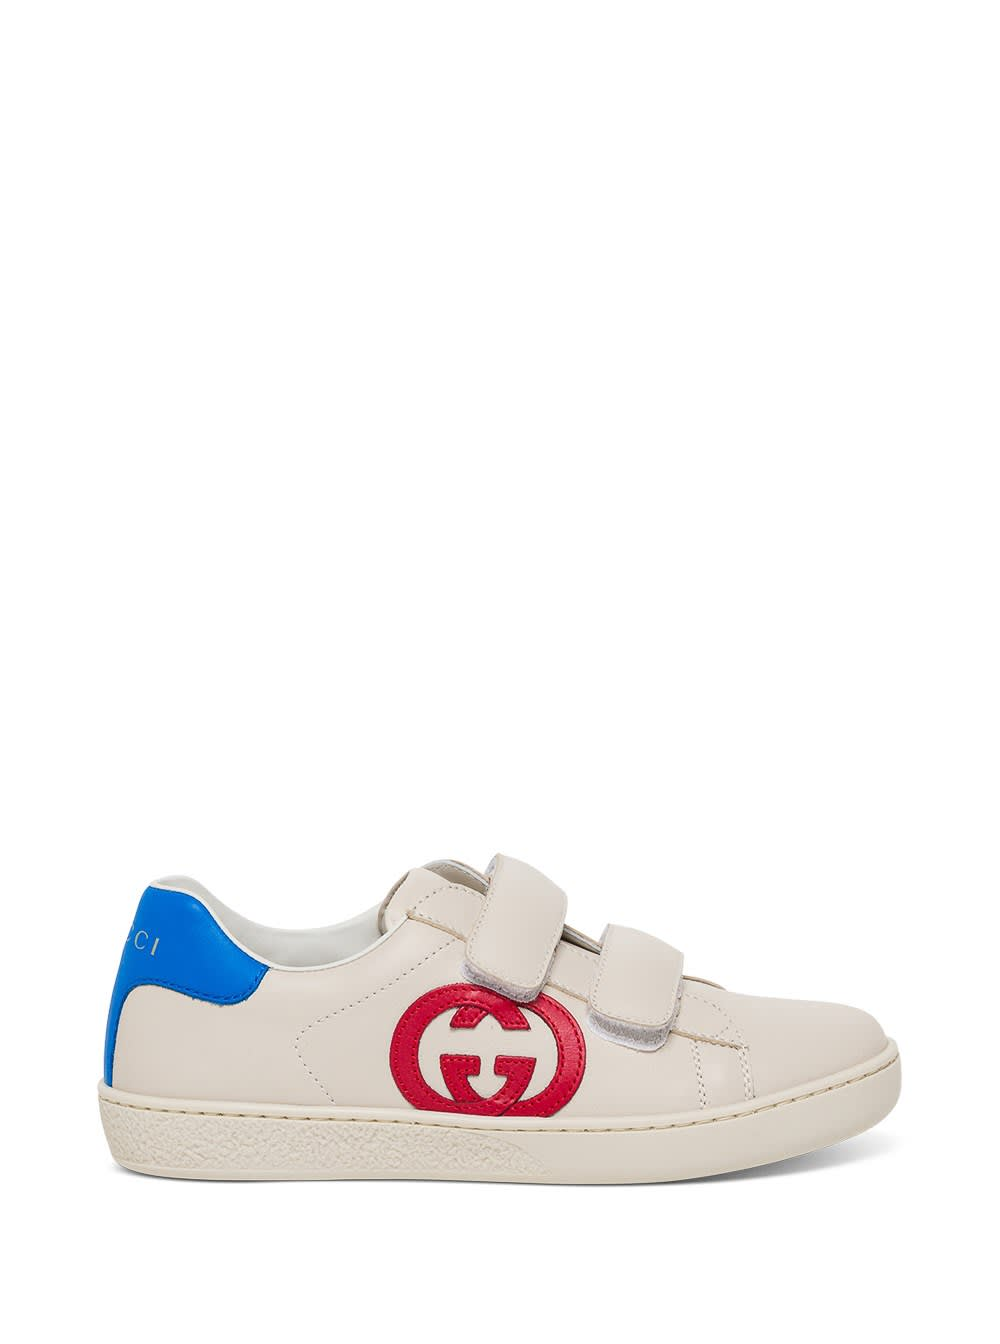 Gucci Ace Leather Sneakers With Logo